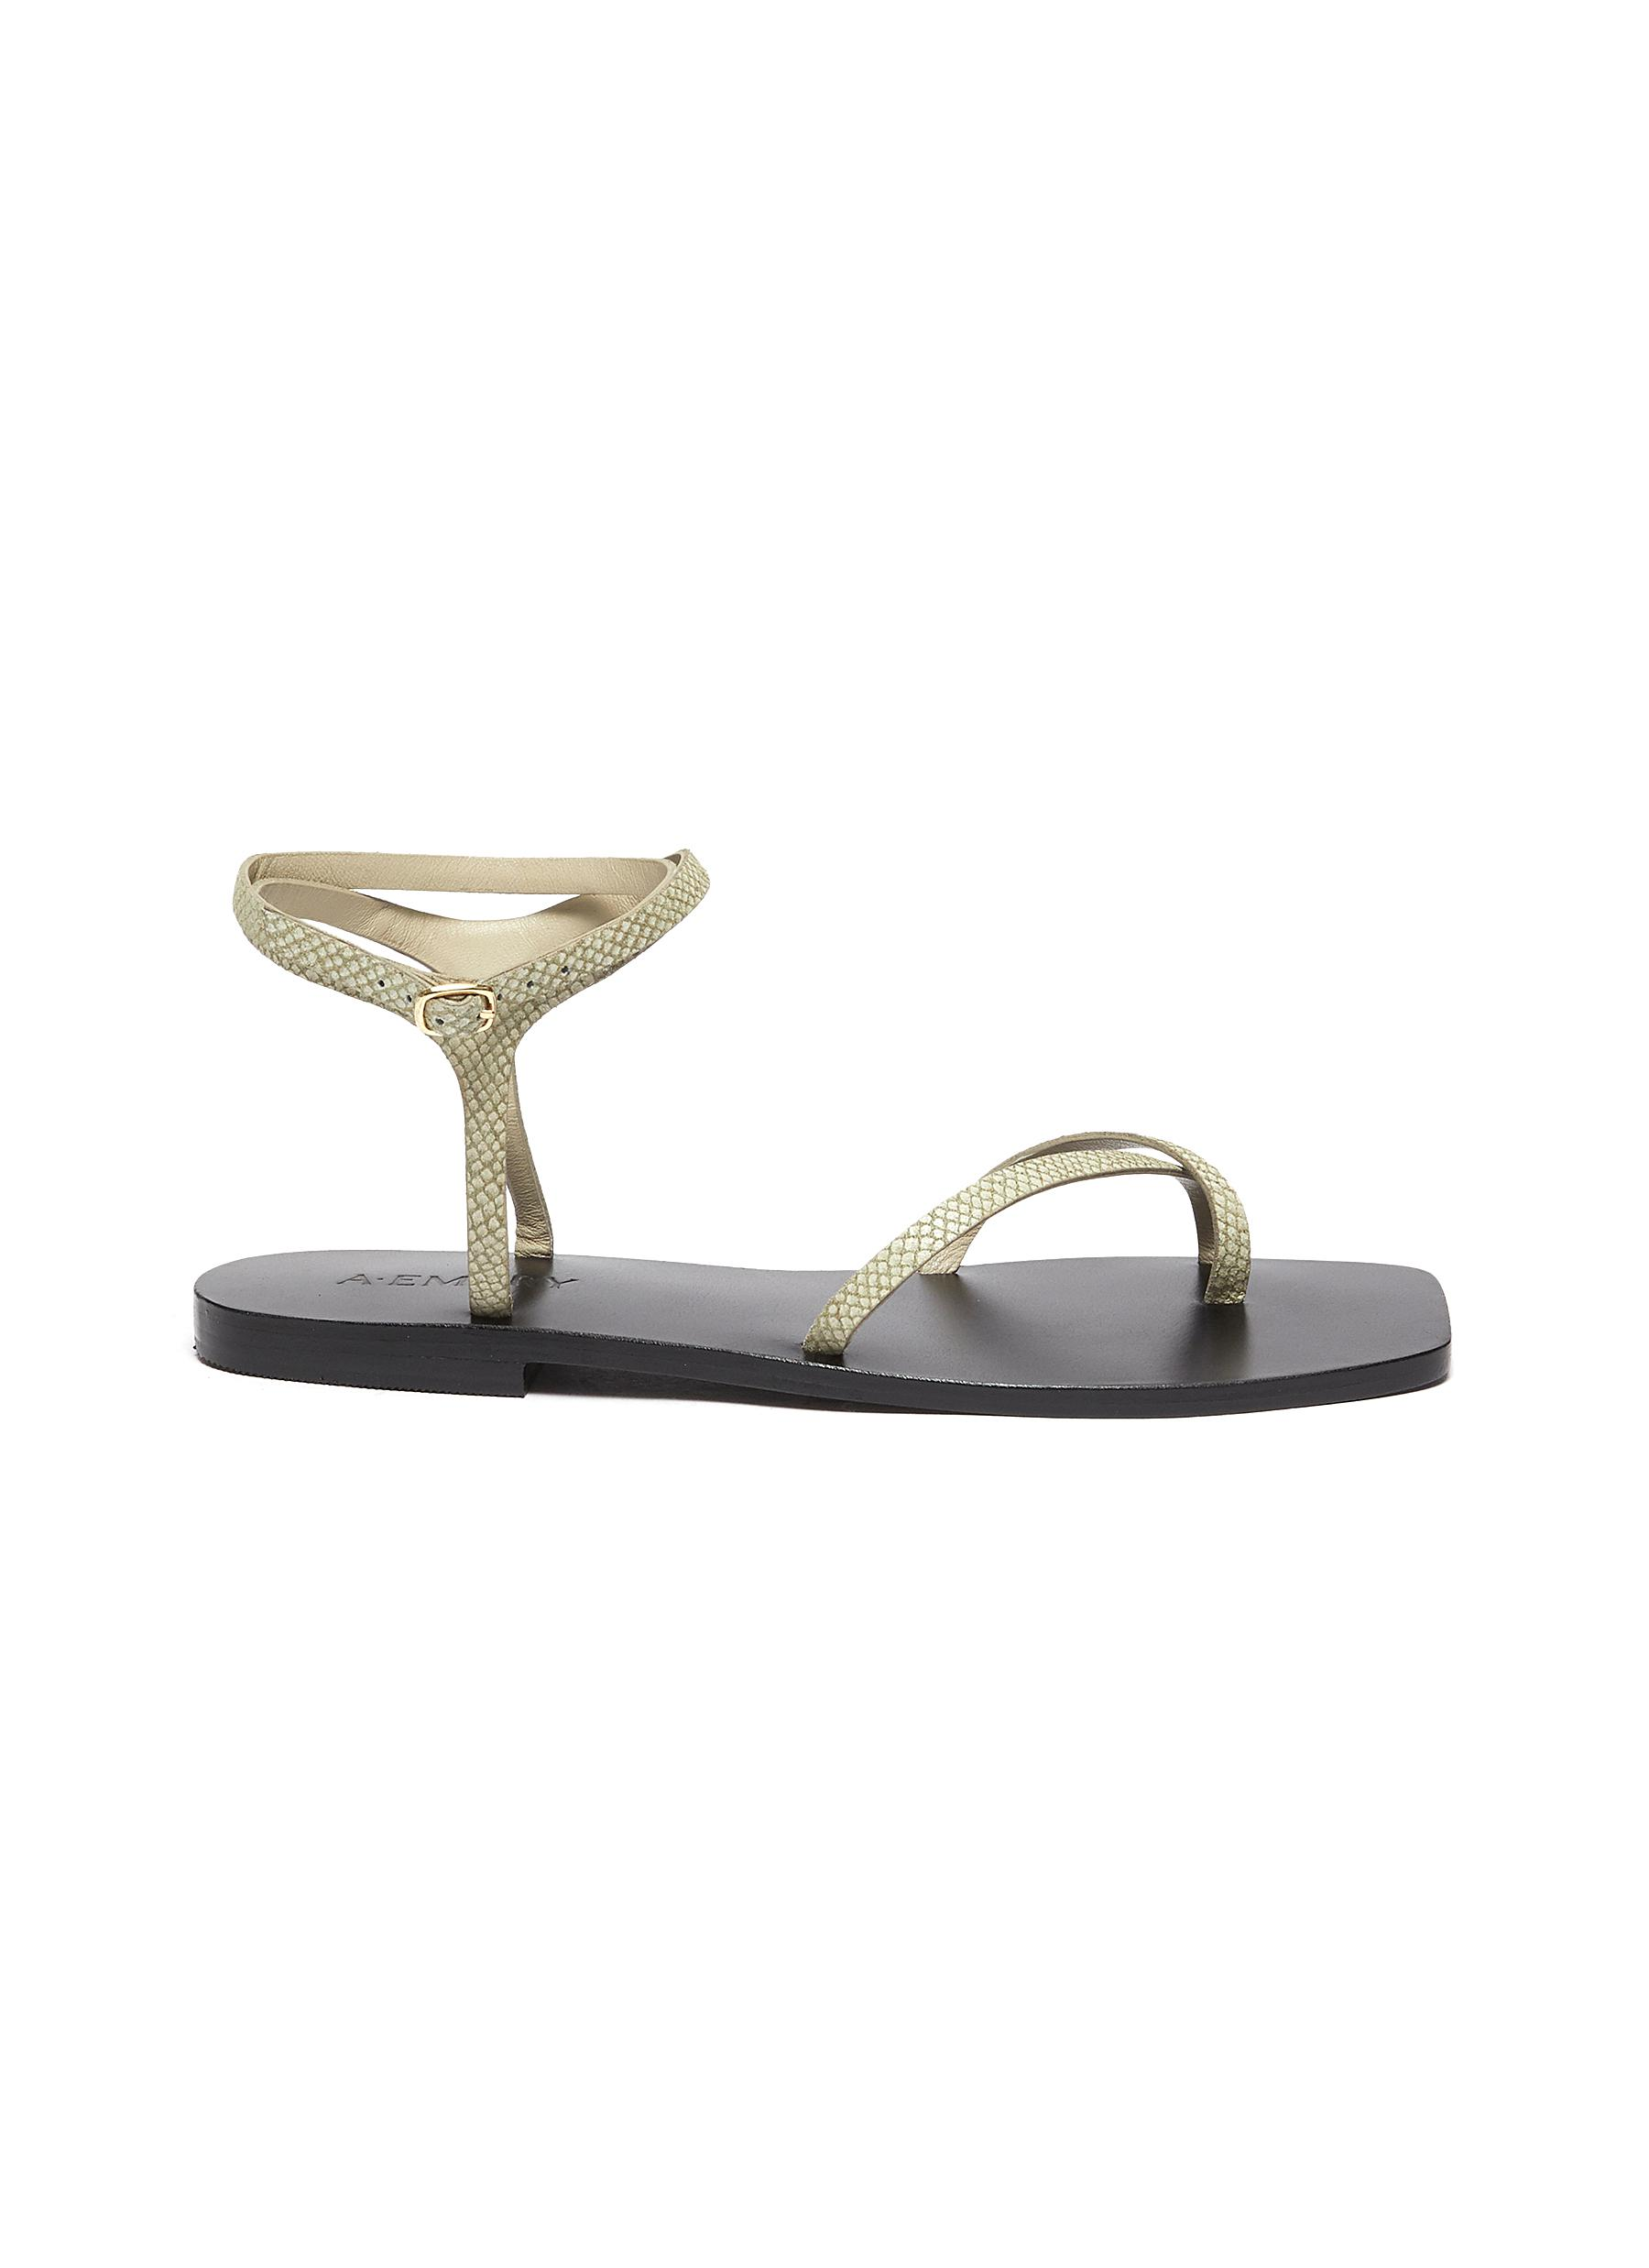 Thia' Ankle Strap Crisscross Leather Flat Sandals